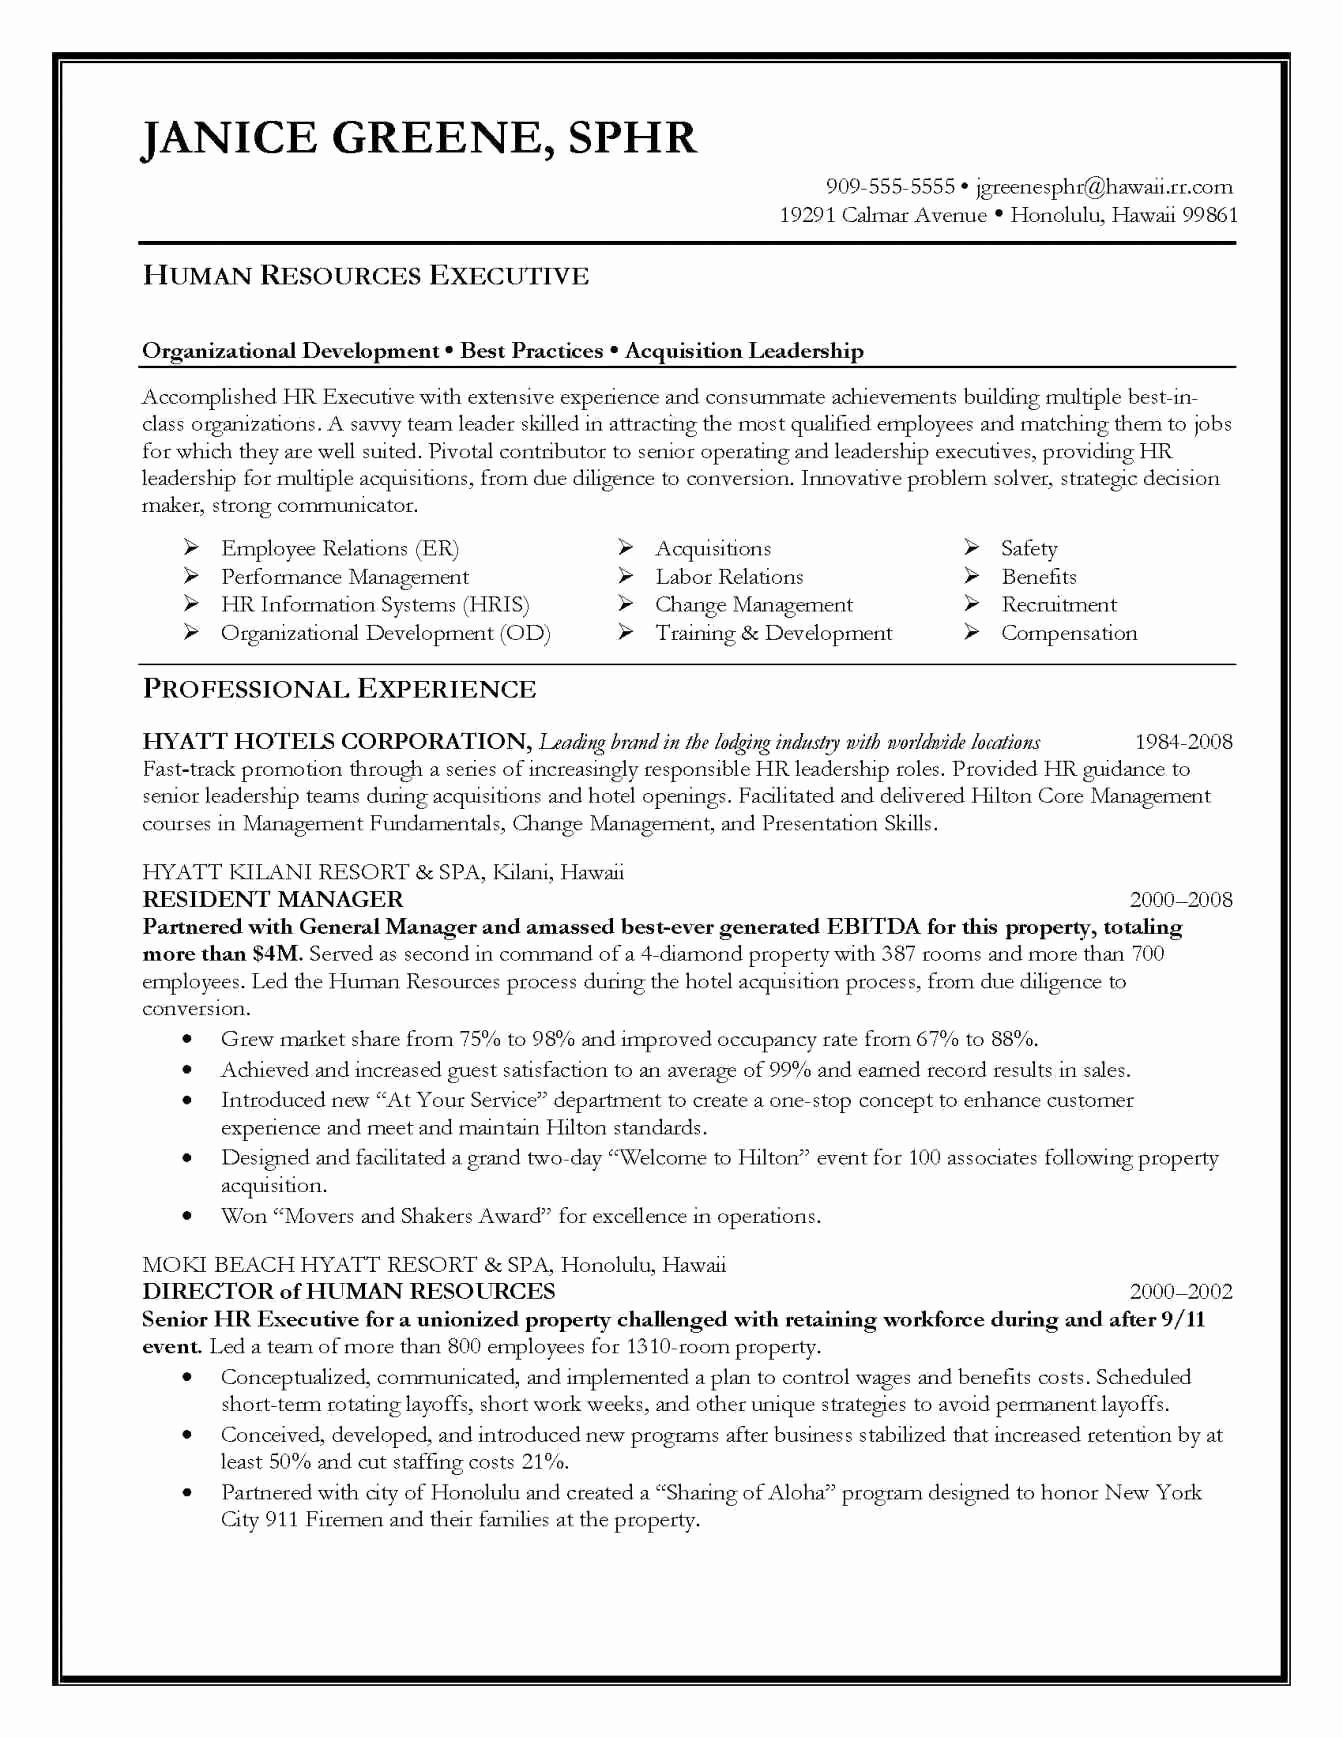 Human Services Resume - Resume Samples for Food Service Awesome Front Desk Hotel Resume